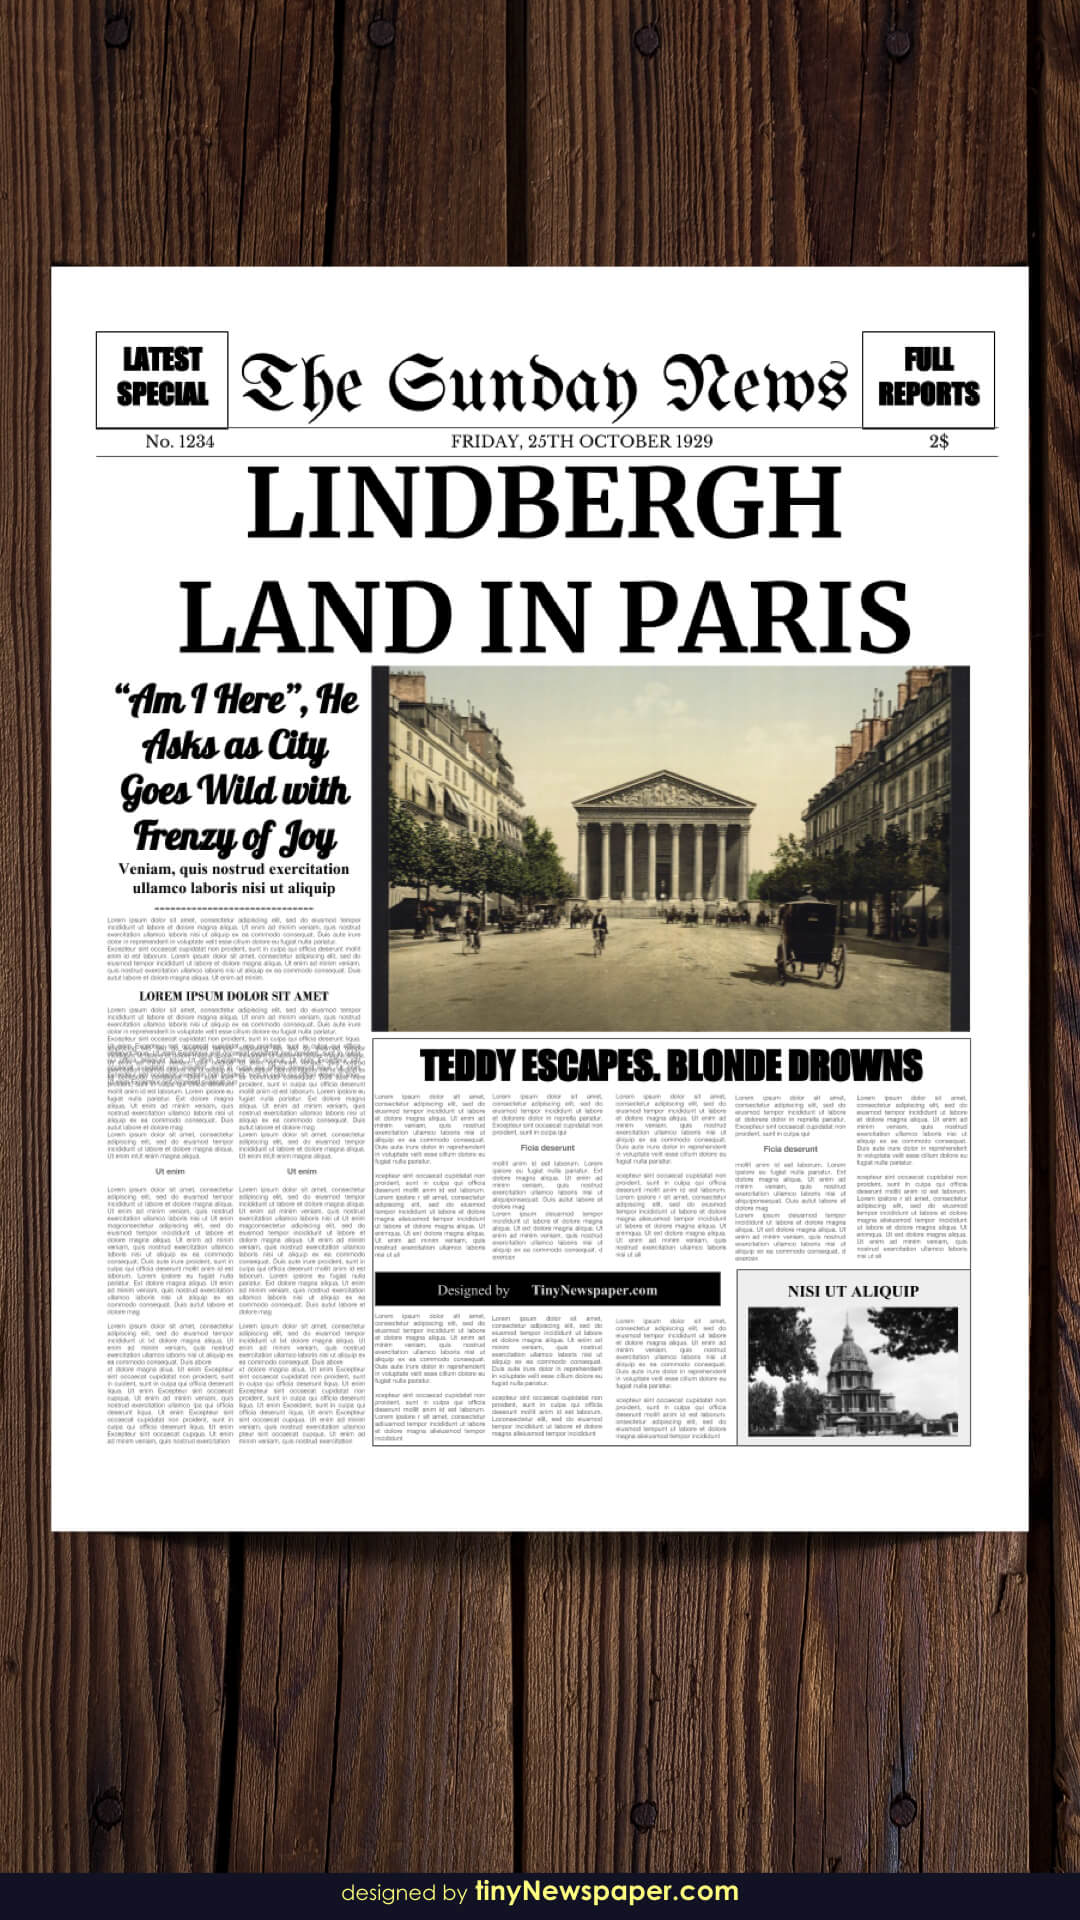 Powerpoint Newspaper Template With Newspaper Template For Powerpoint